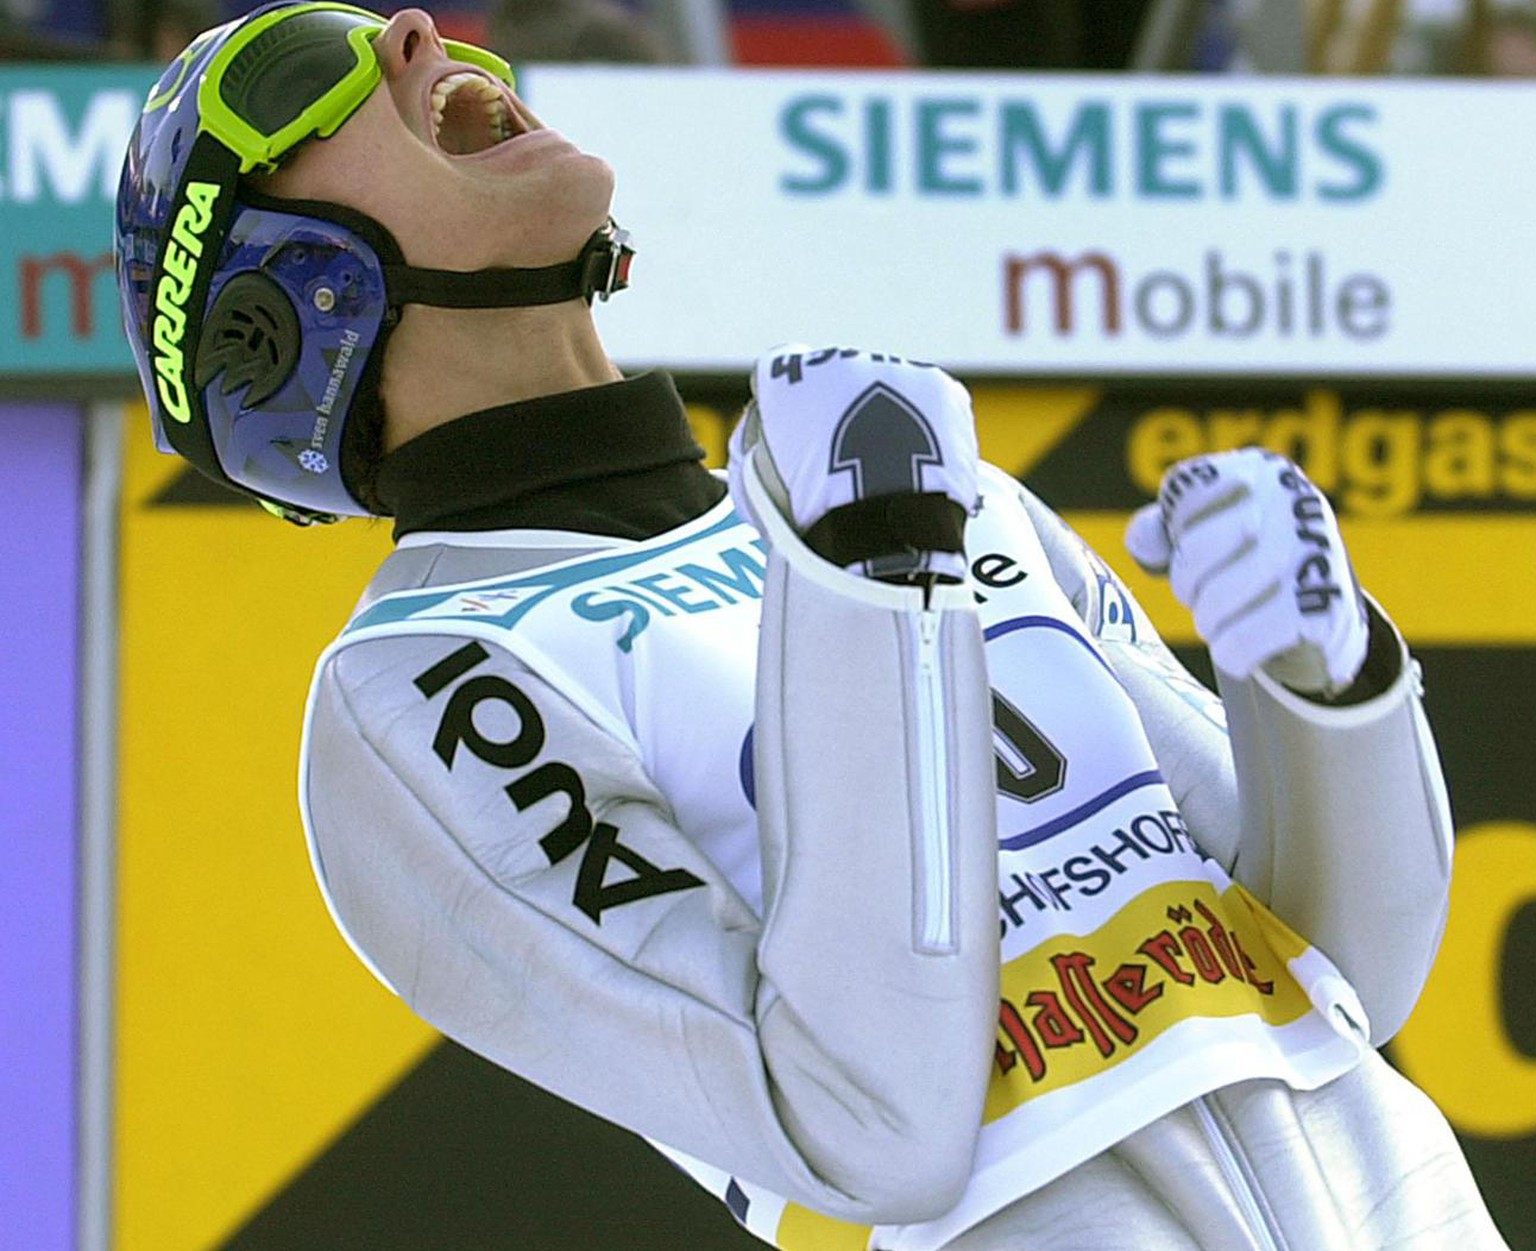 BIS04 - 20020106 - BISCHOFSHOFEN, AUSTRIA : German Sven Hannawald jubilates after his first jump at the Bischofshofen ski jumping competition, the fourth and last stage of the Four Hills Tournament, in Bischofshofen, Sunday 06 January 2002. Hannawald leads the pack after the first round with 139 m.  EPA PHOTO   APA/GINDL BARBARA/gi/mr